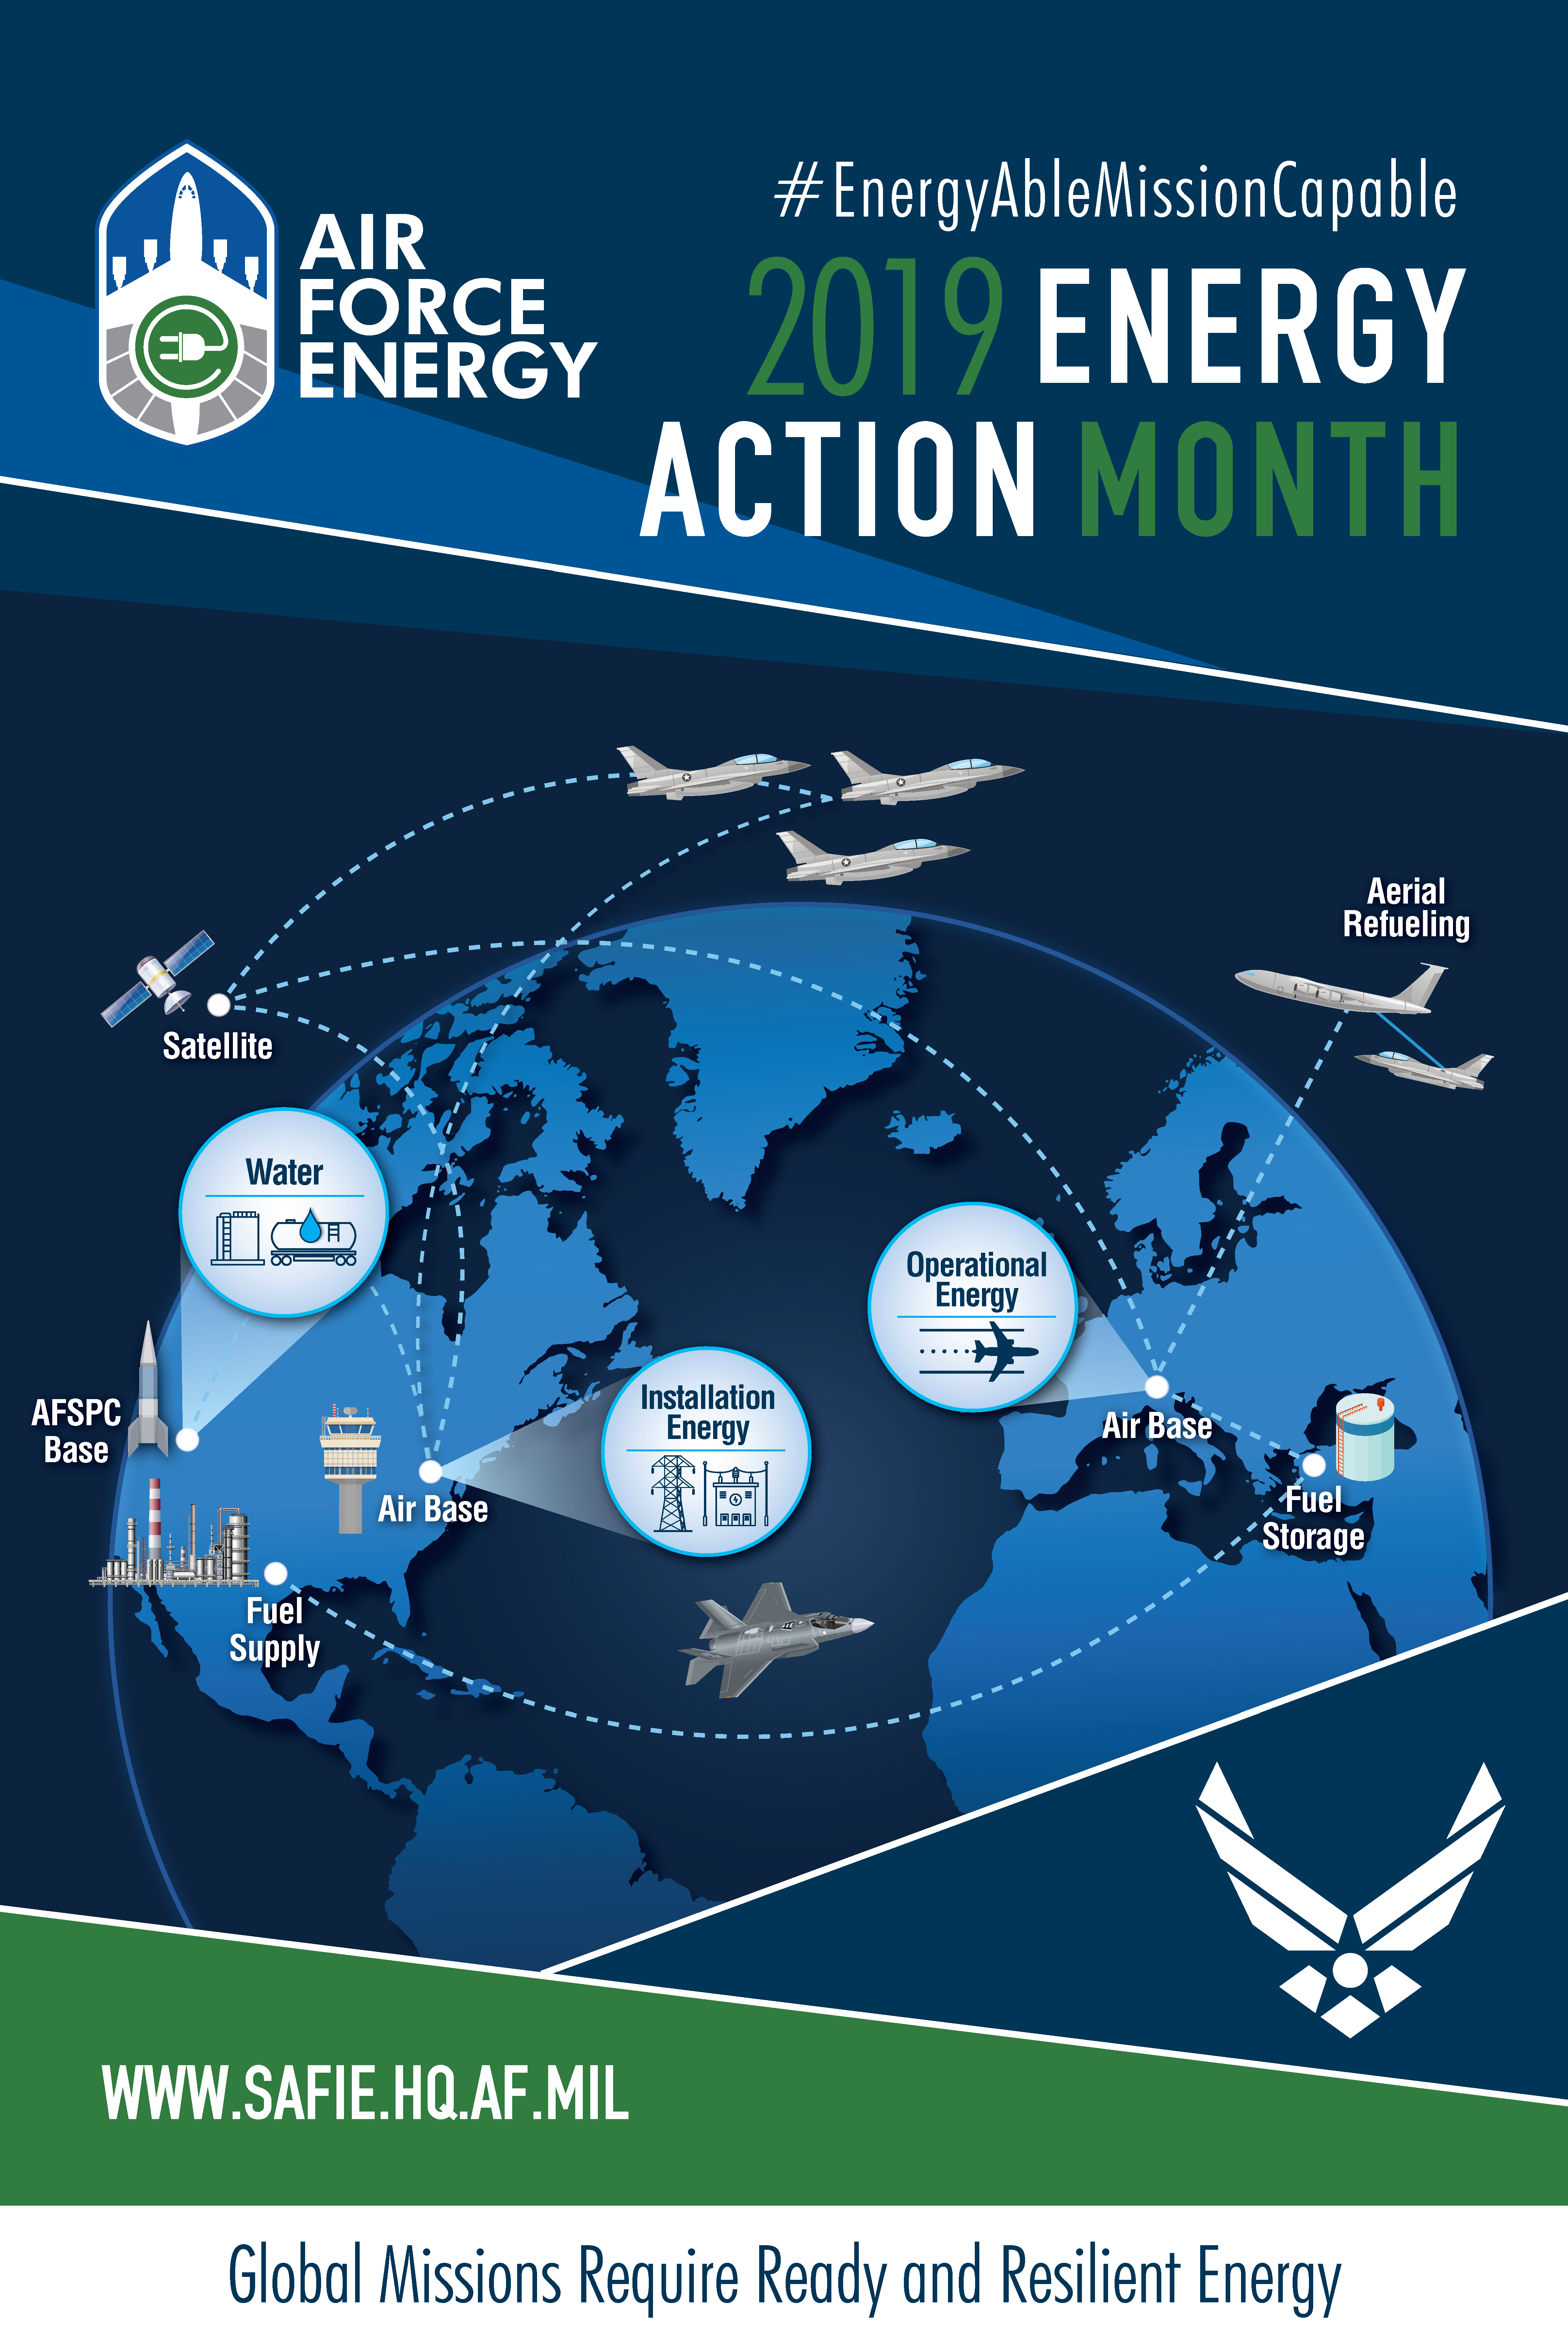 Energy Action Month Poster 2019